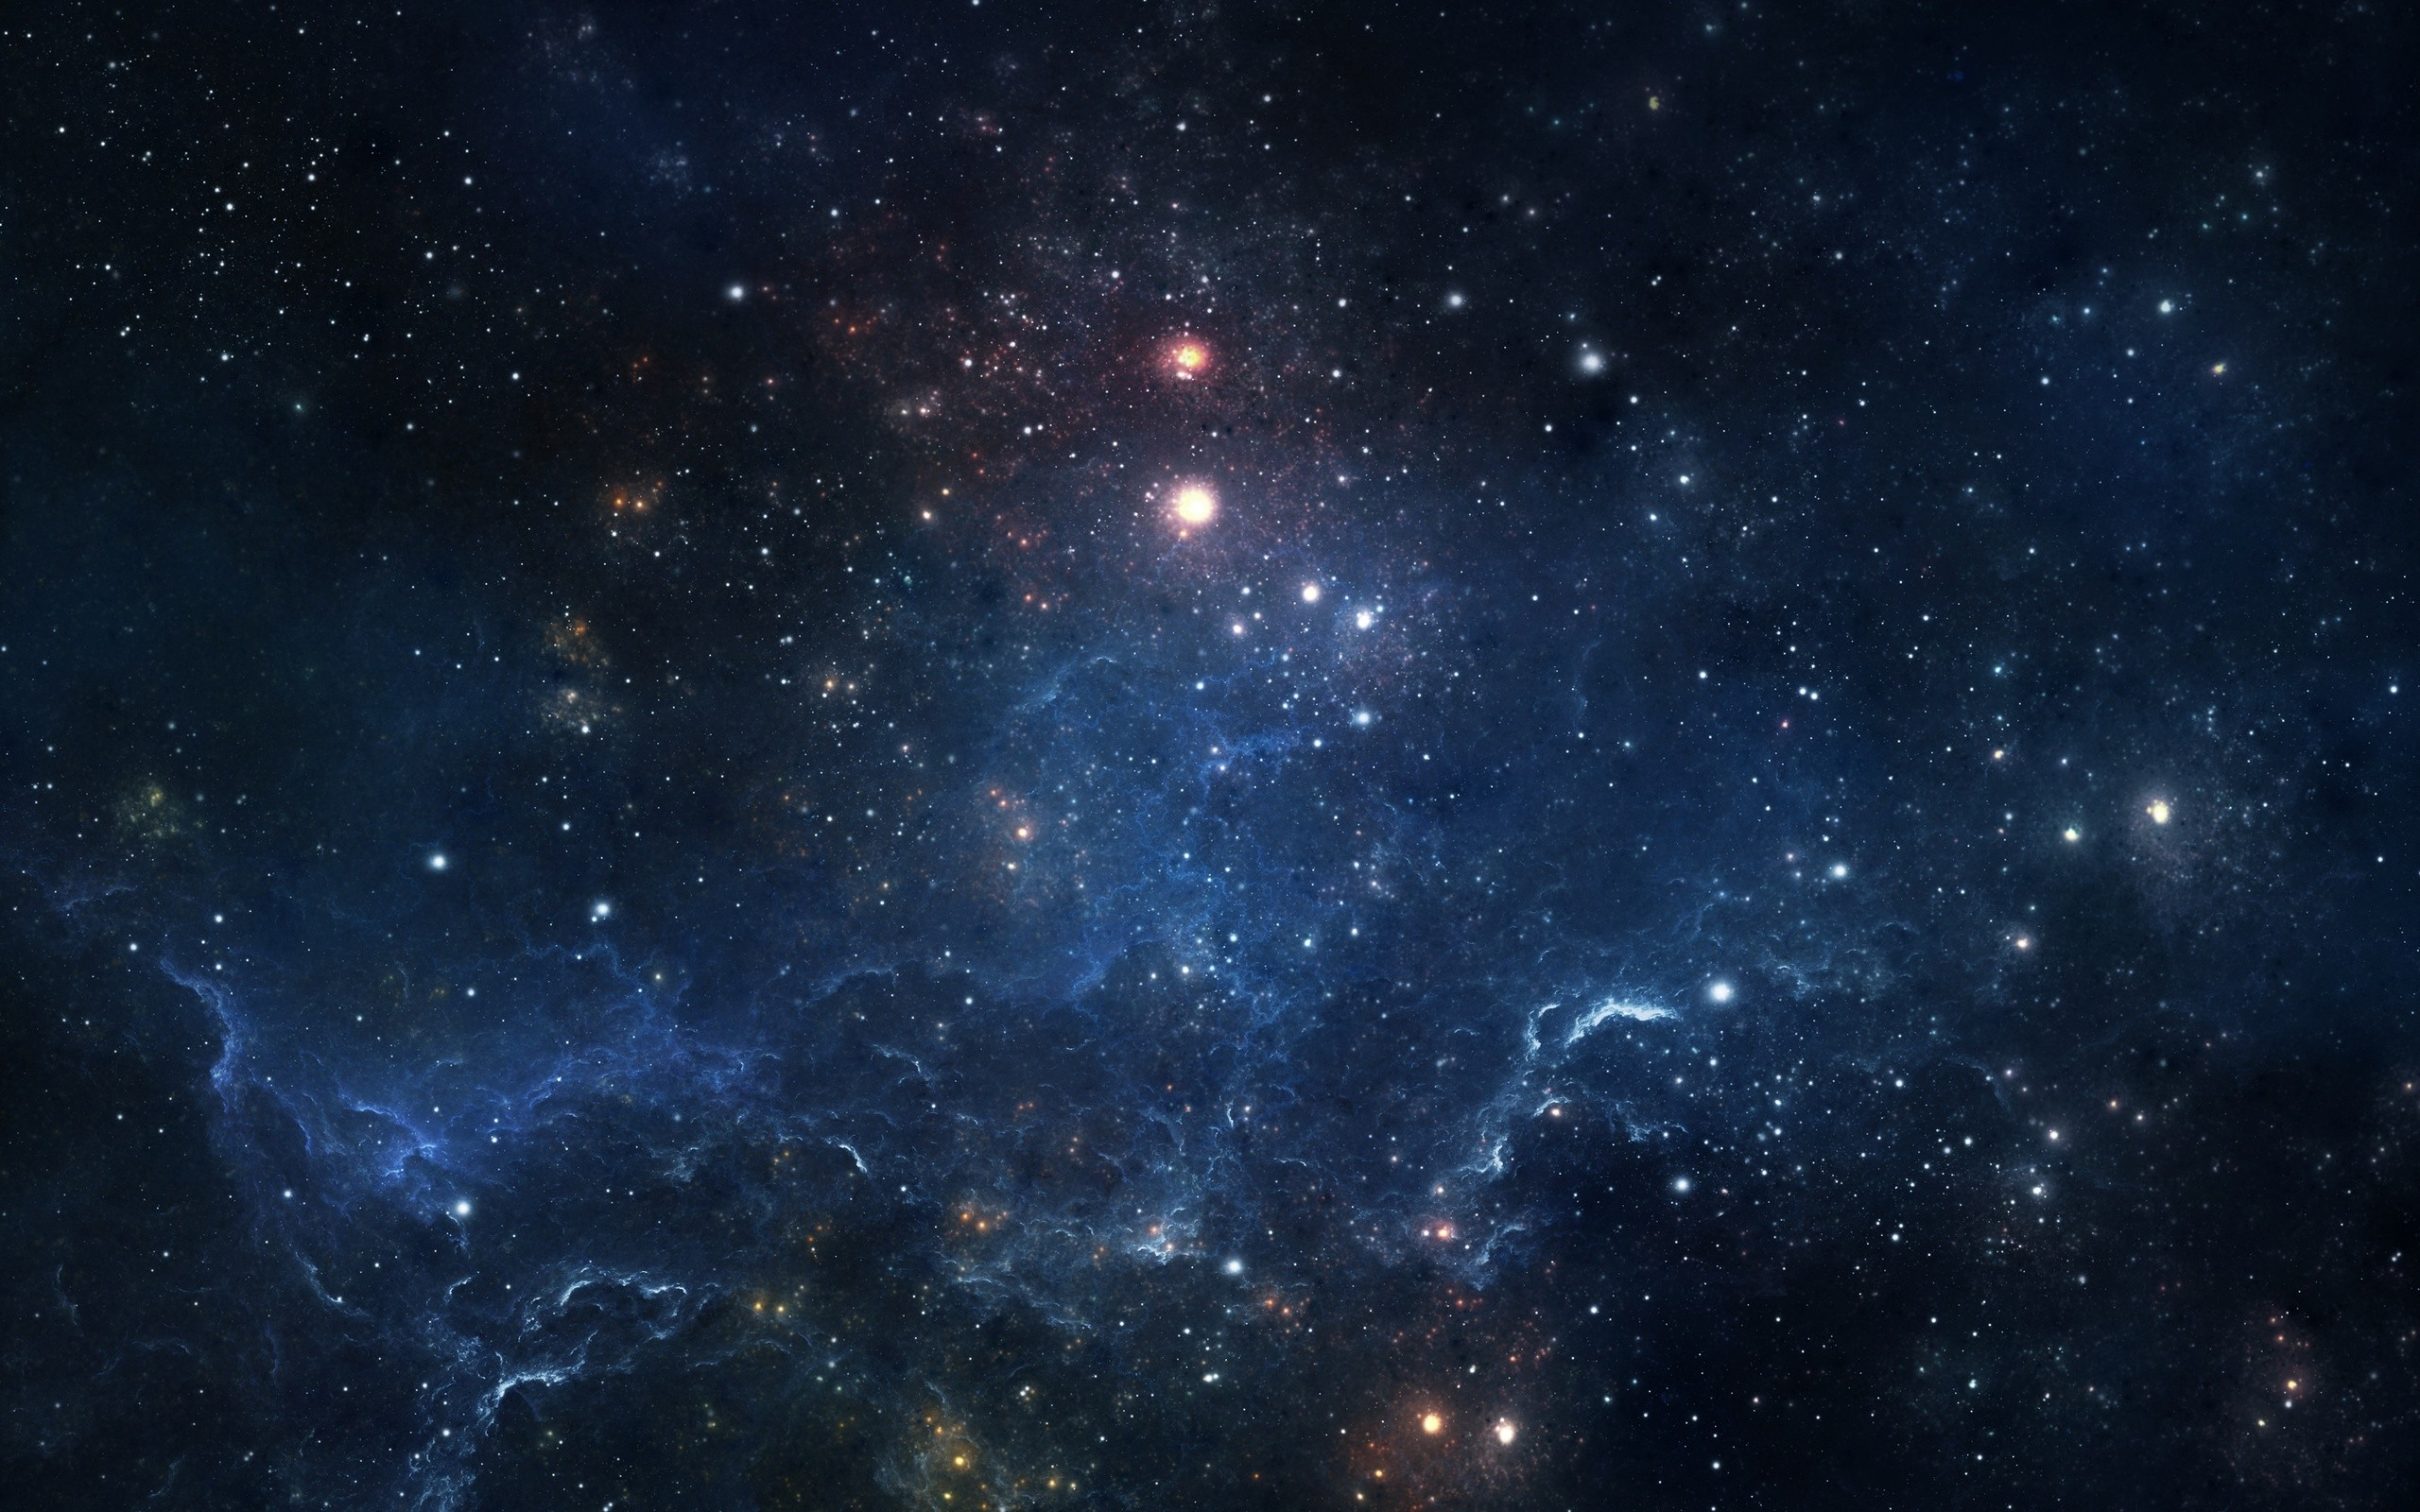 Space Wallpaper 2560x1600